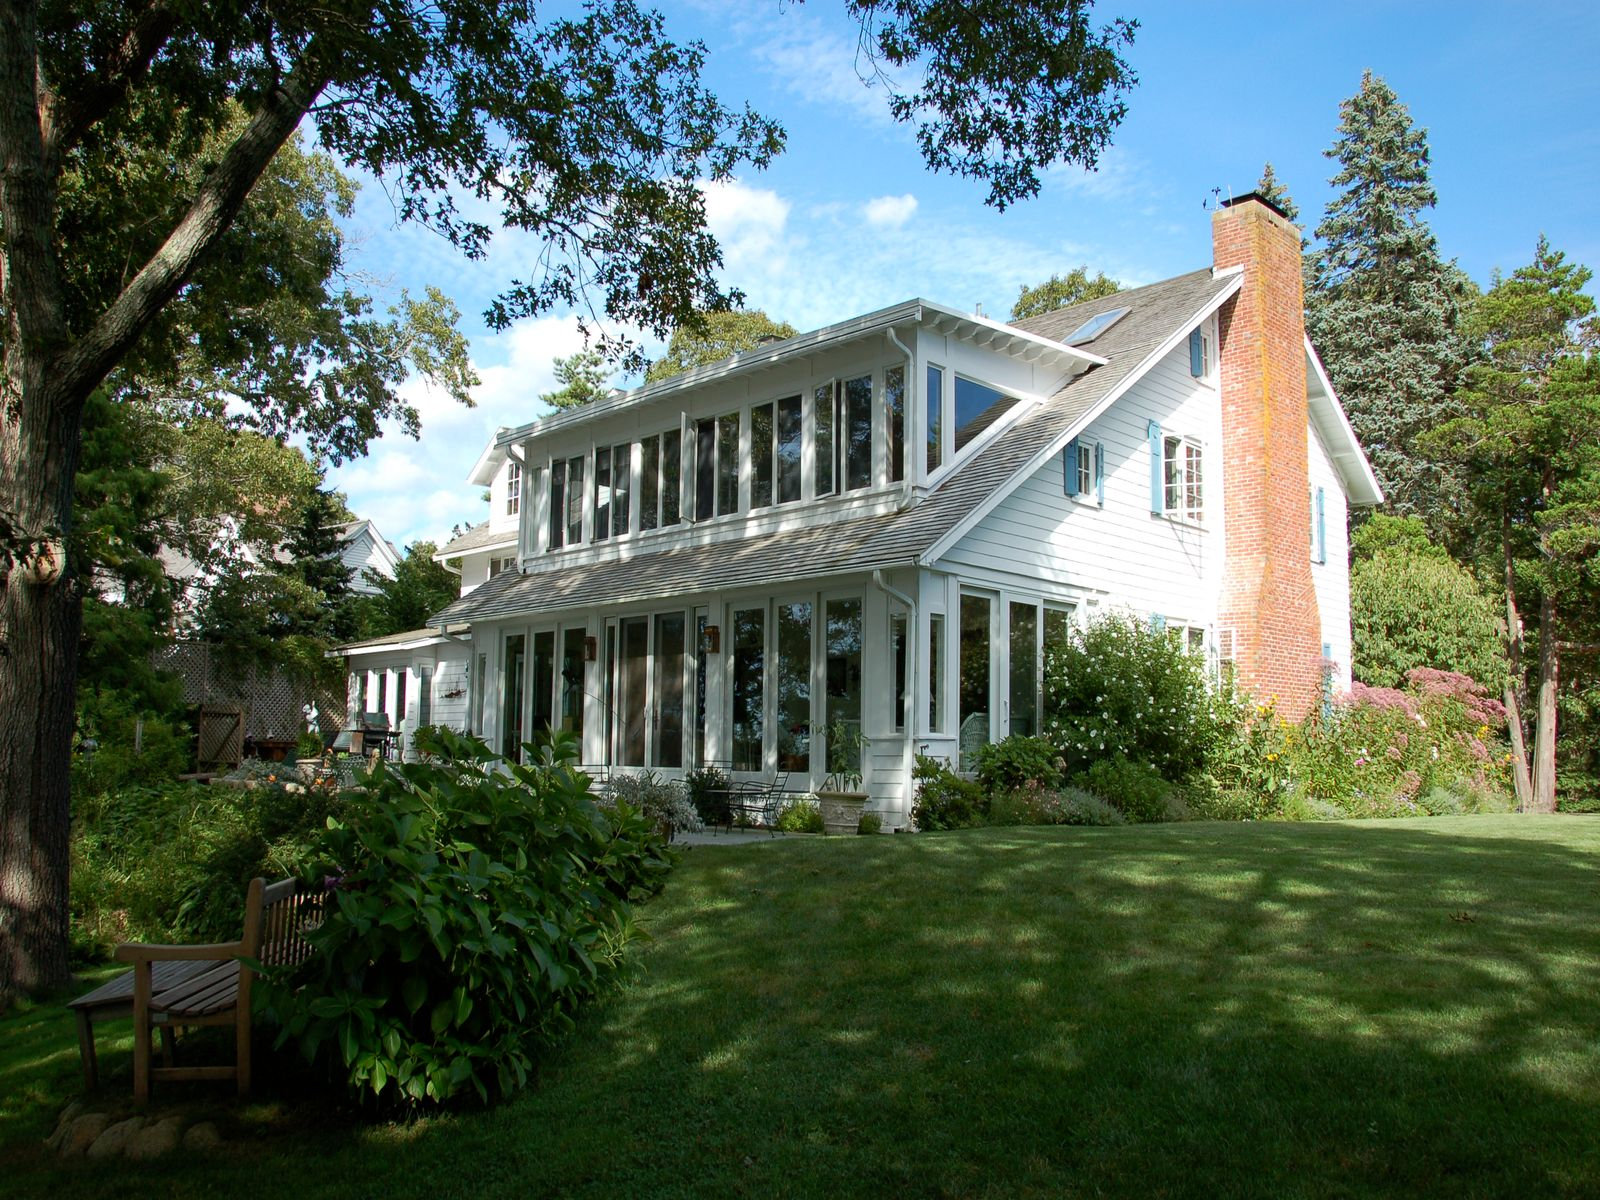 Waterfront Estate with Boathouse & Dock, Osterville MA Single Family Home - Cape Cod Real Estate